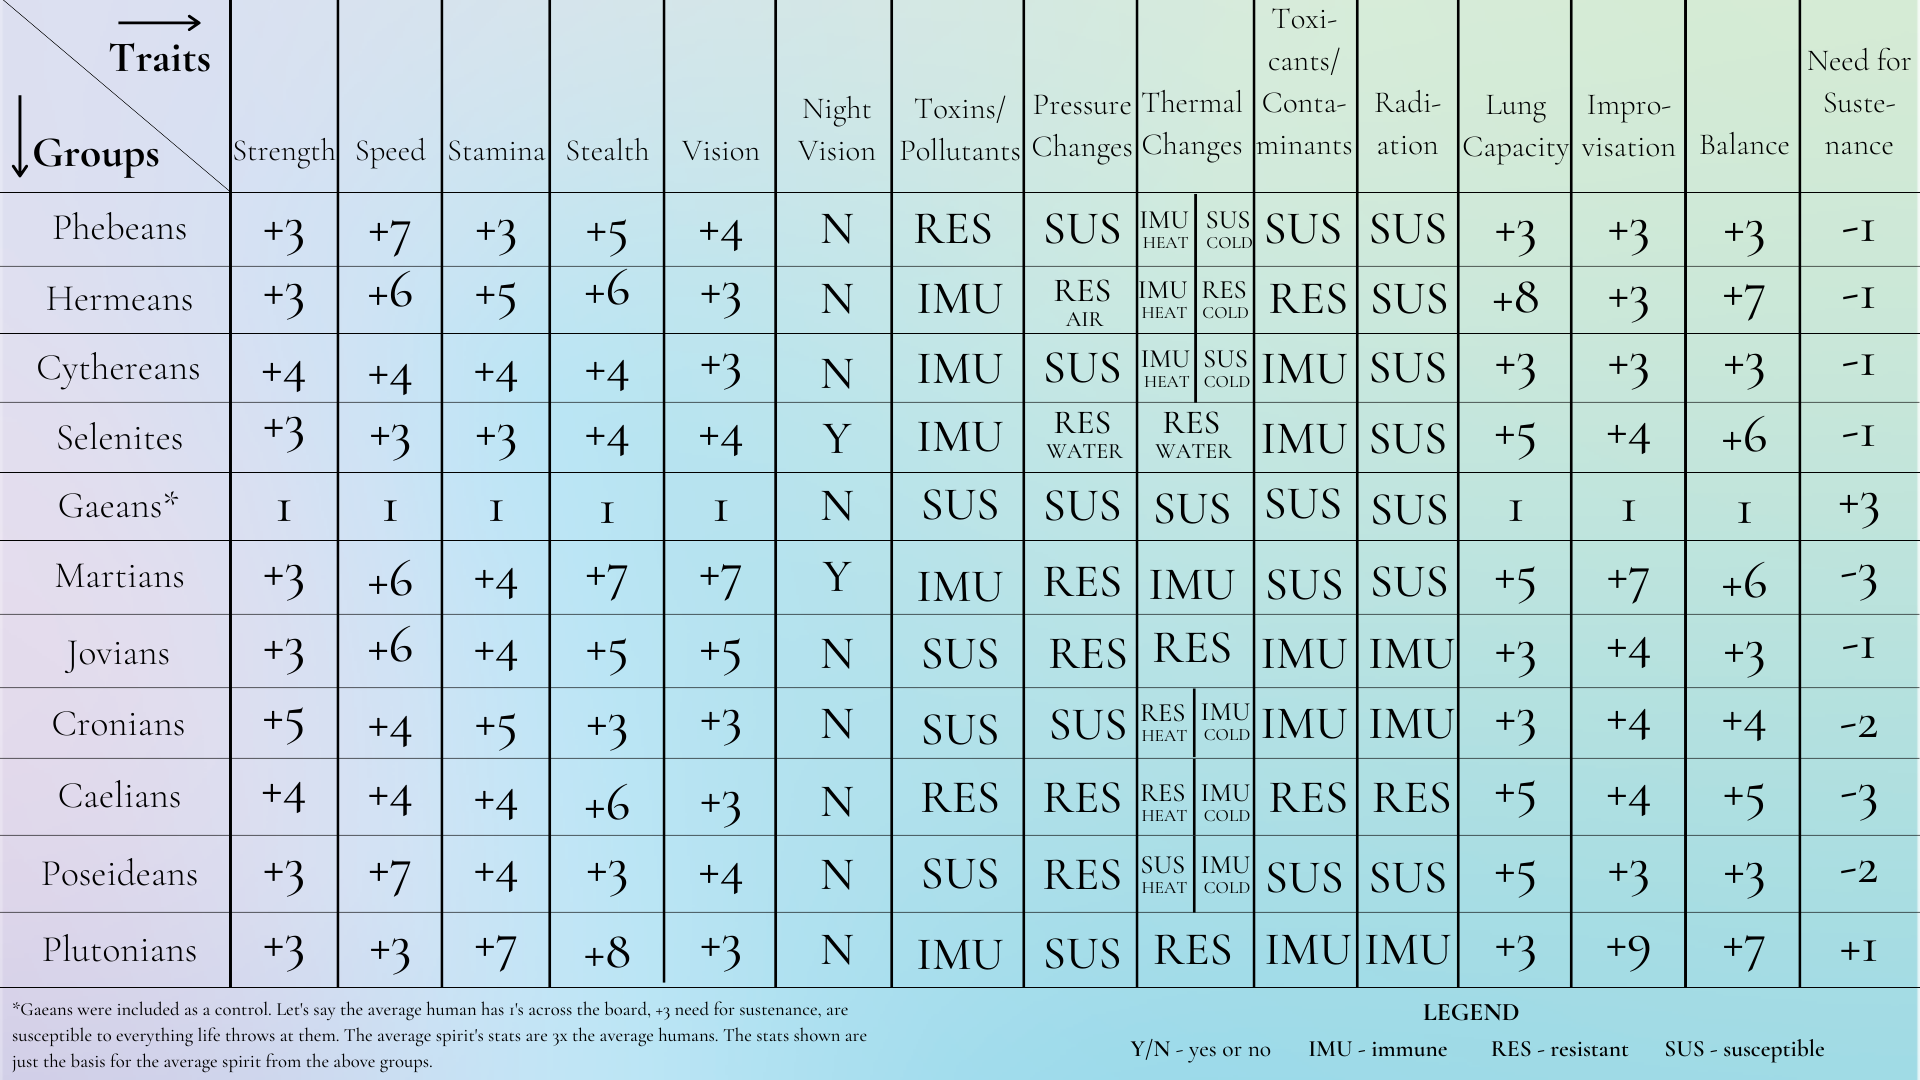 """Group traits are laid out on a table and compared to the average human. Spoiler alert: on a scale from -10 to +10, humans are at 1's across the board (except for """"need for sustenance"""" in which they're in the lead at +3). At the bottom is a brief description: Gaeans were included as a control. Let's say the average human has 1's across the board, +3 need for sustenance, are susceptible to everything life throws at them. The average spirit's stats are 3x the average human's. The stats shown are just the basis for the average spirit from the above groups."""